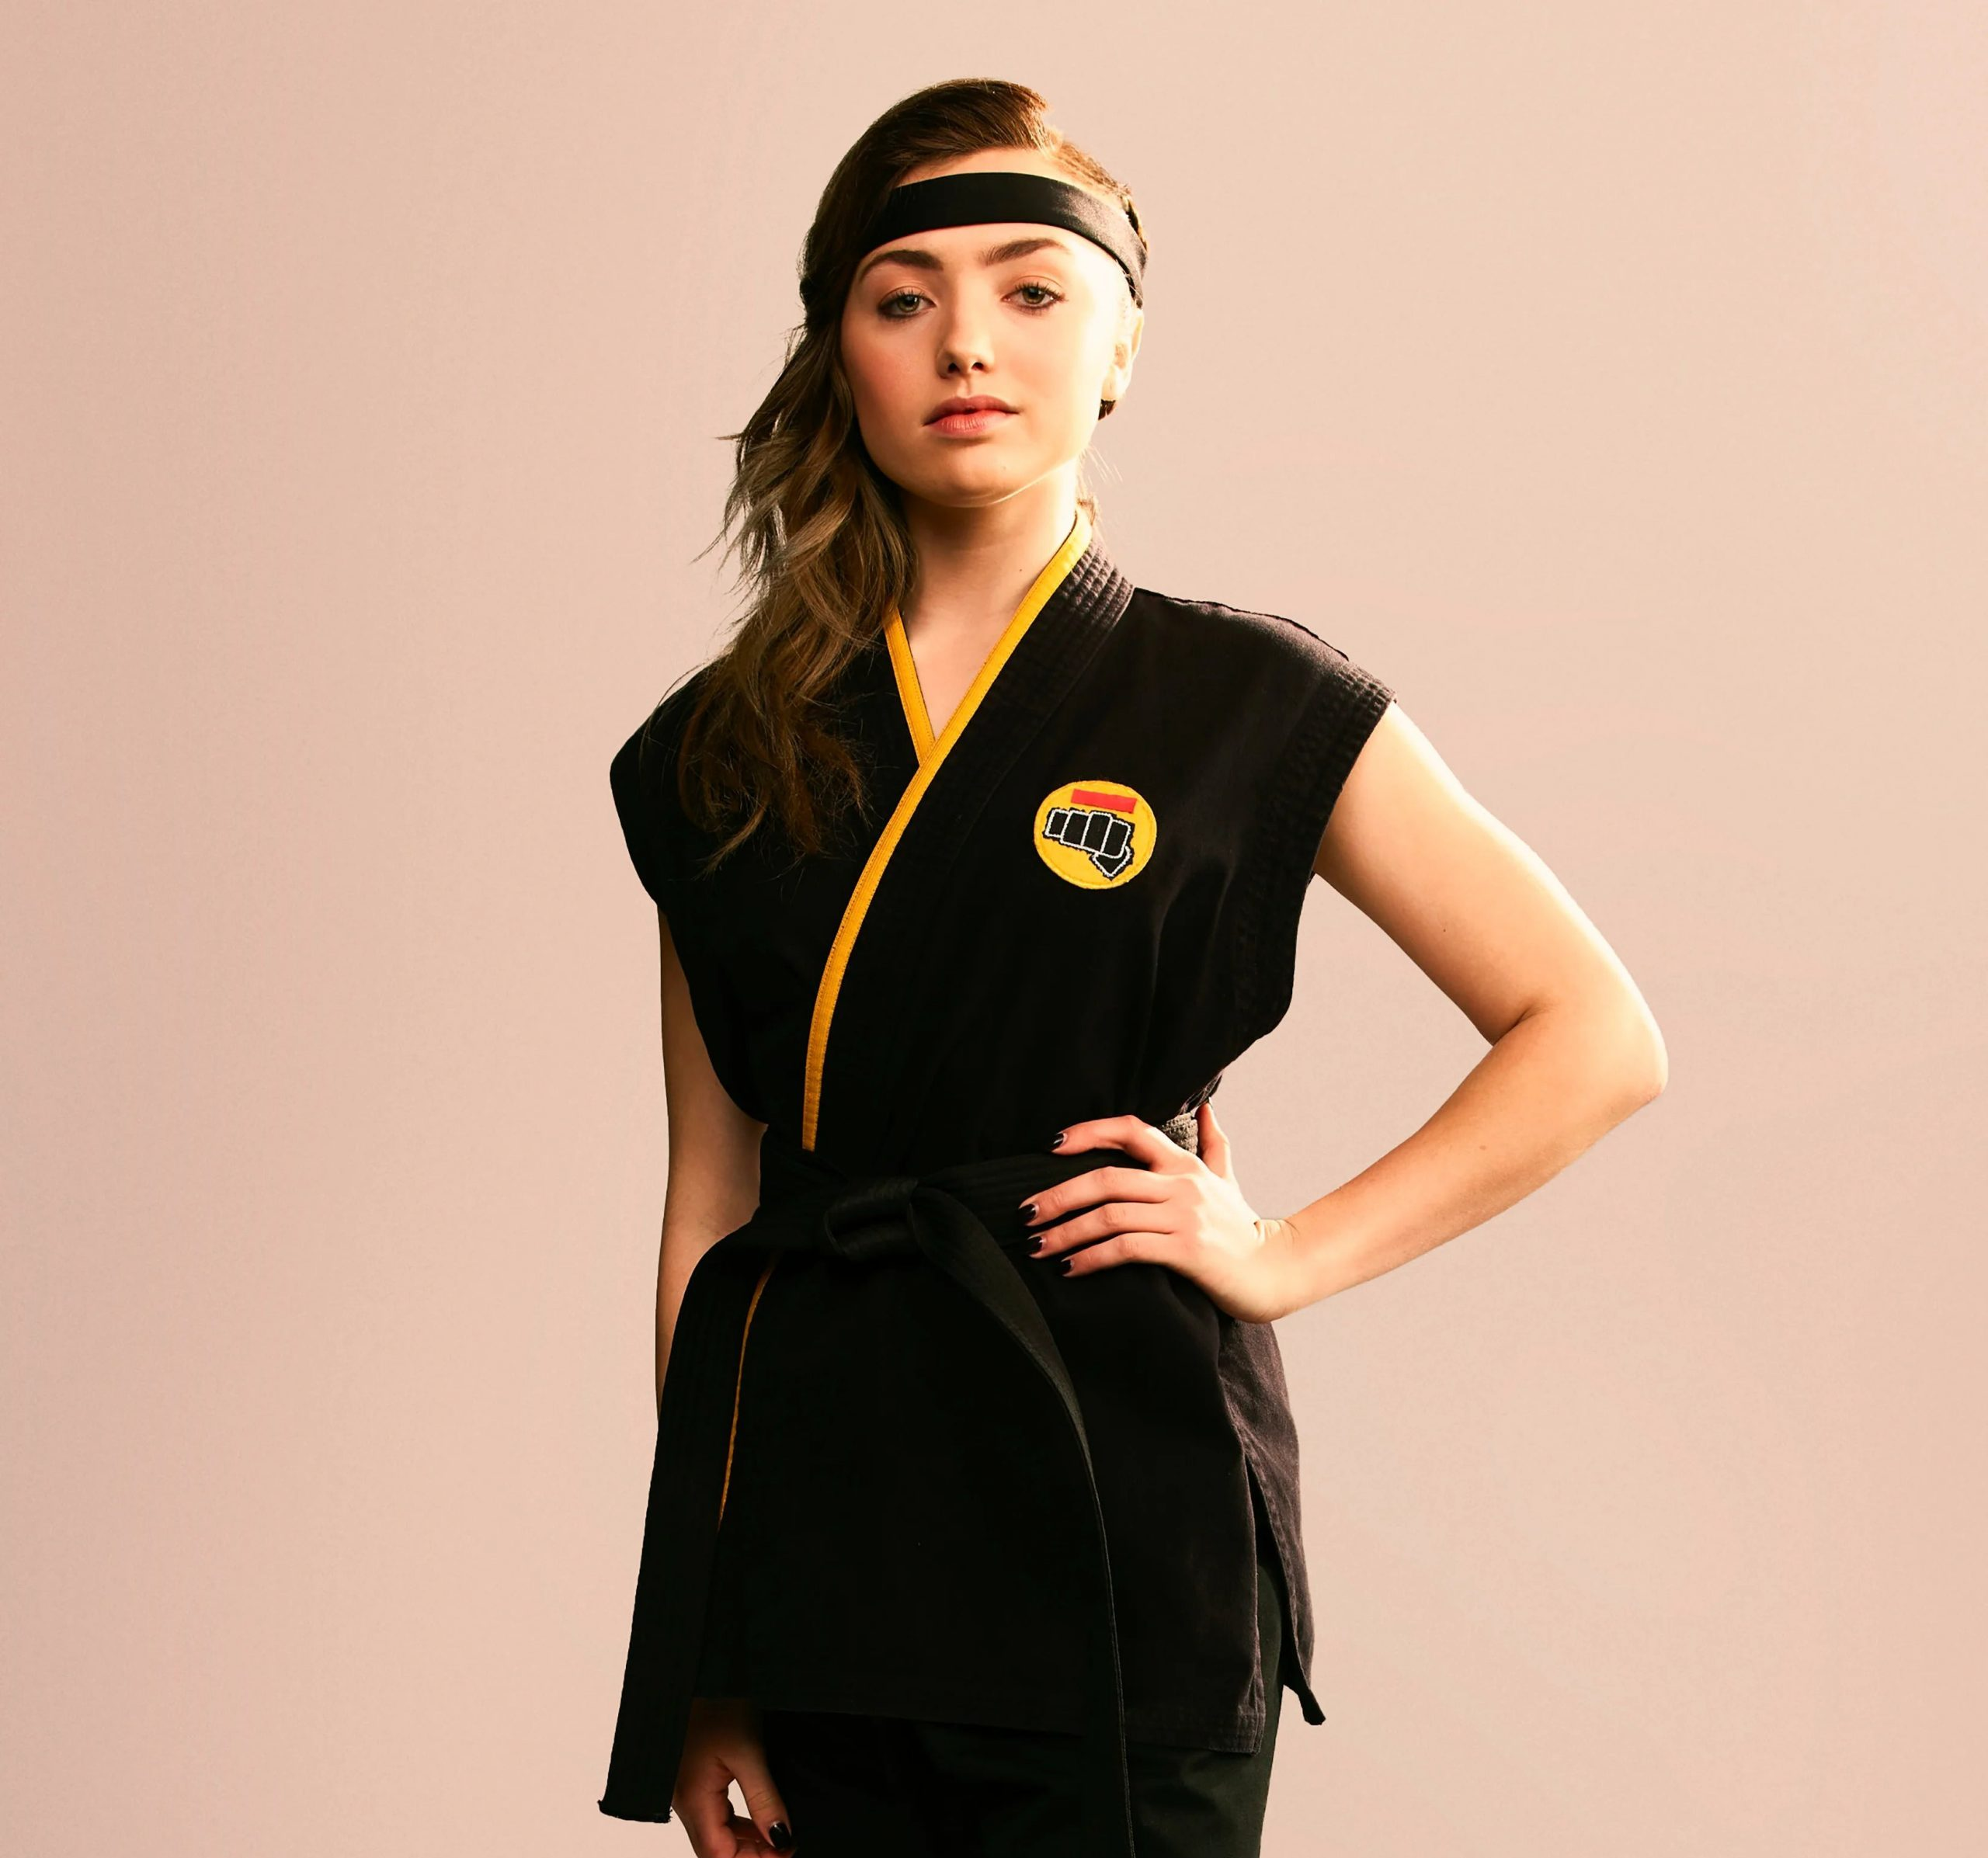 1 15 scaled e1605183923587 30 Things You Might Not Have Known About Cobra Kai